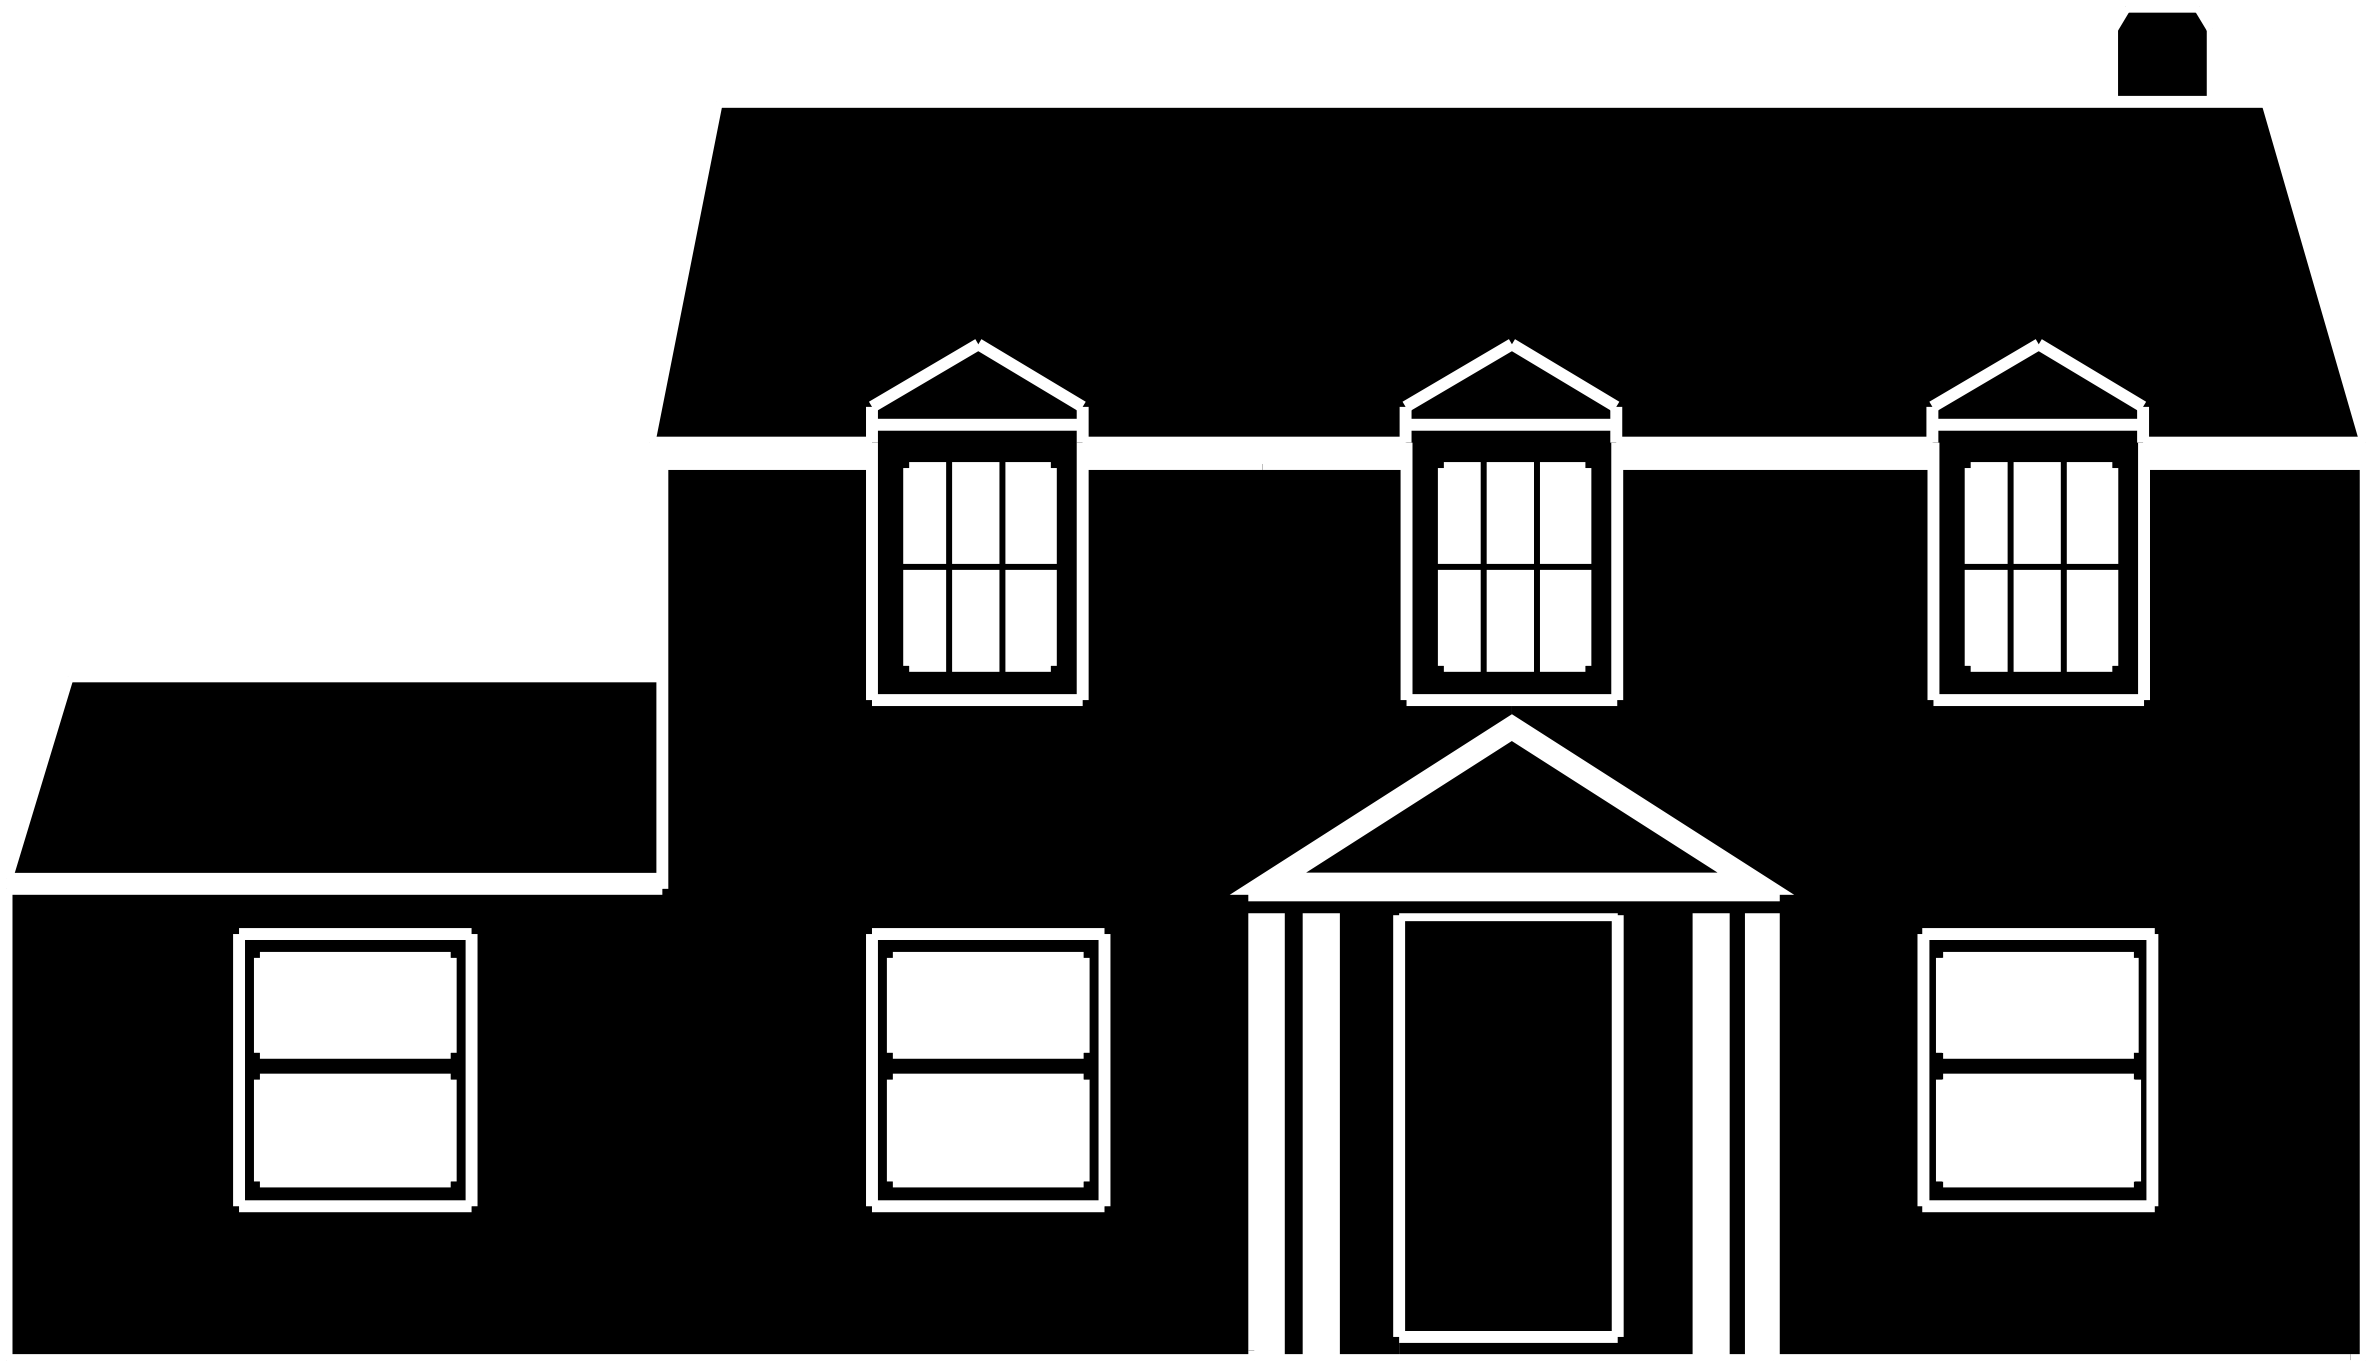 Clipart - Black And White House